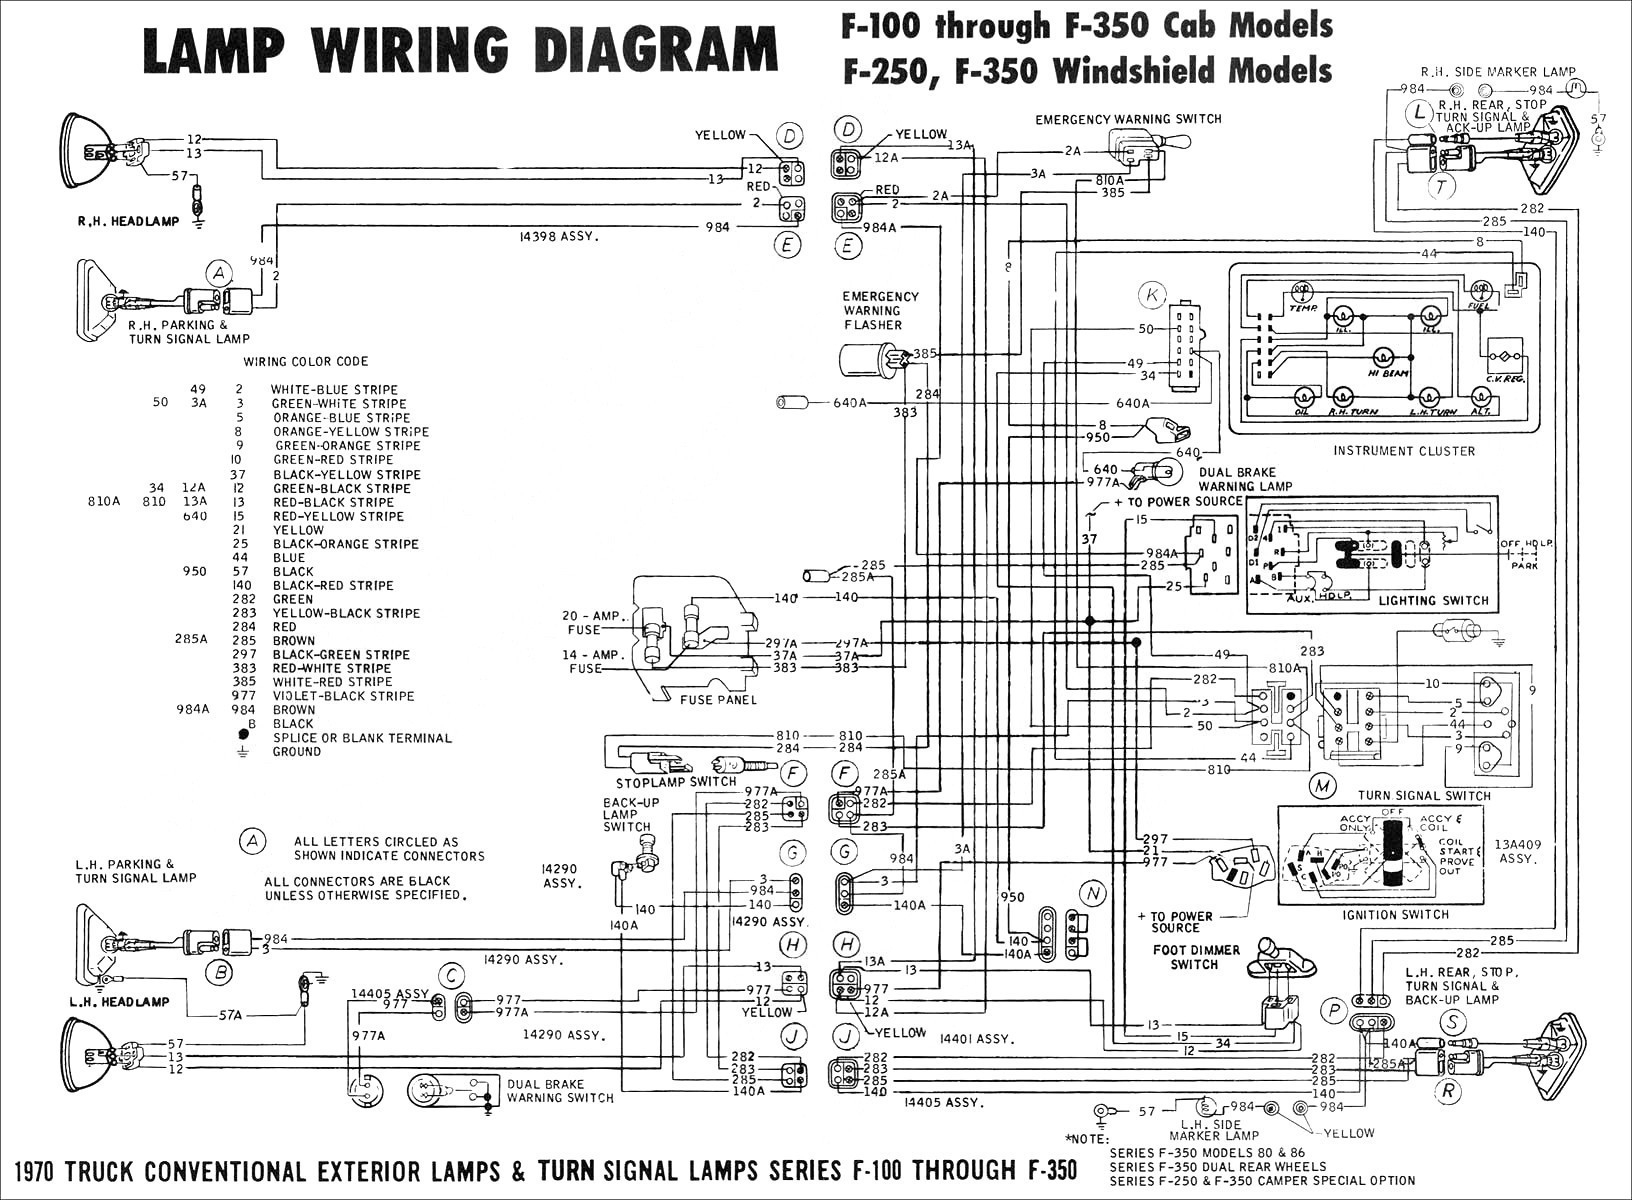 [DIAGRAM] Wiring Diagram For 2000 Toyota Ta FULL Version